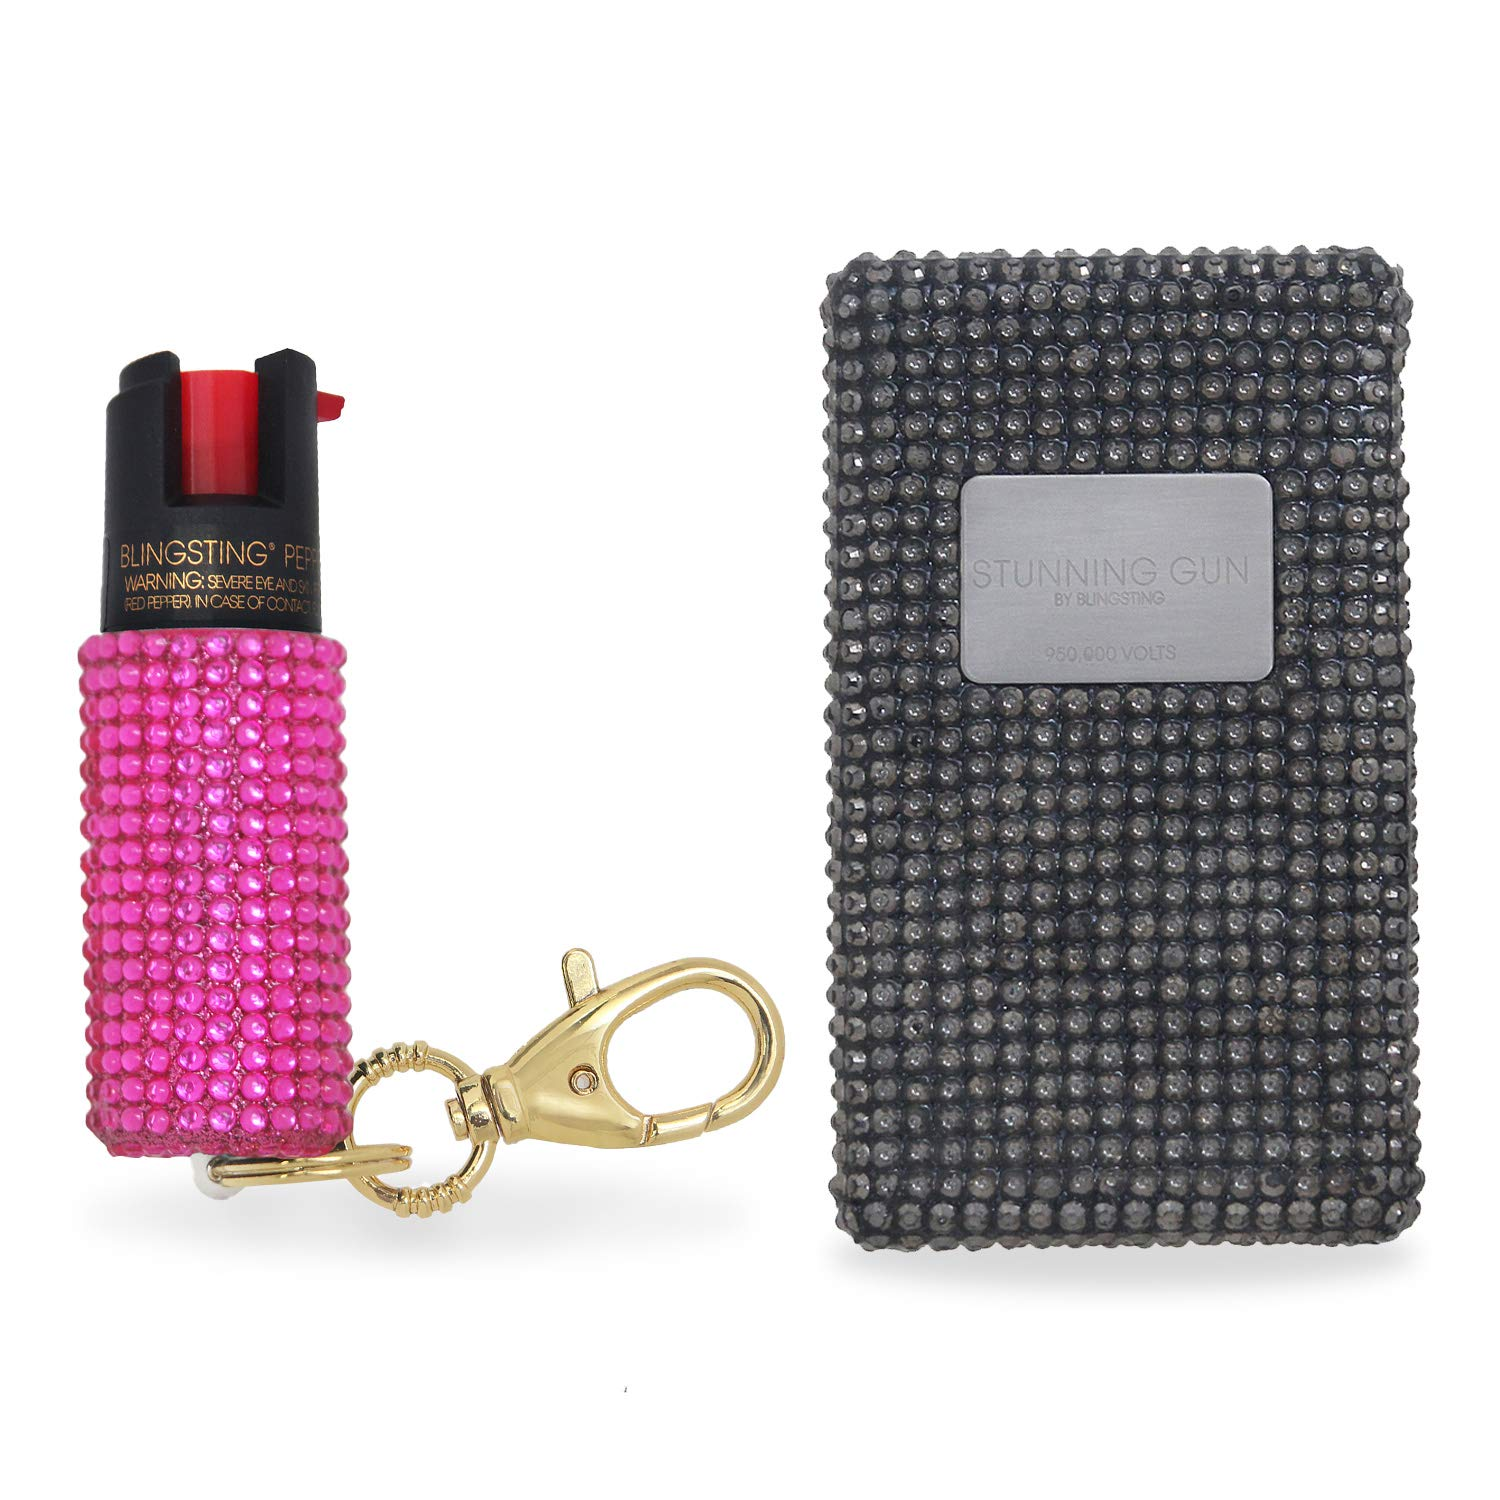 BLINGSTING Pepper Spray & Stun Gun Combo Safety Set - Carry Two Powerful Self Defense Products for Women, Maximum Strength Formula with UV Marking Dye, Keychain Clasp AND 950,000 Volt Compact Stun Gun by BLINGSTING